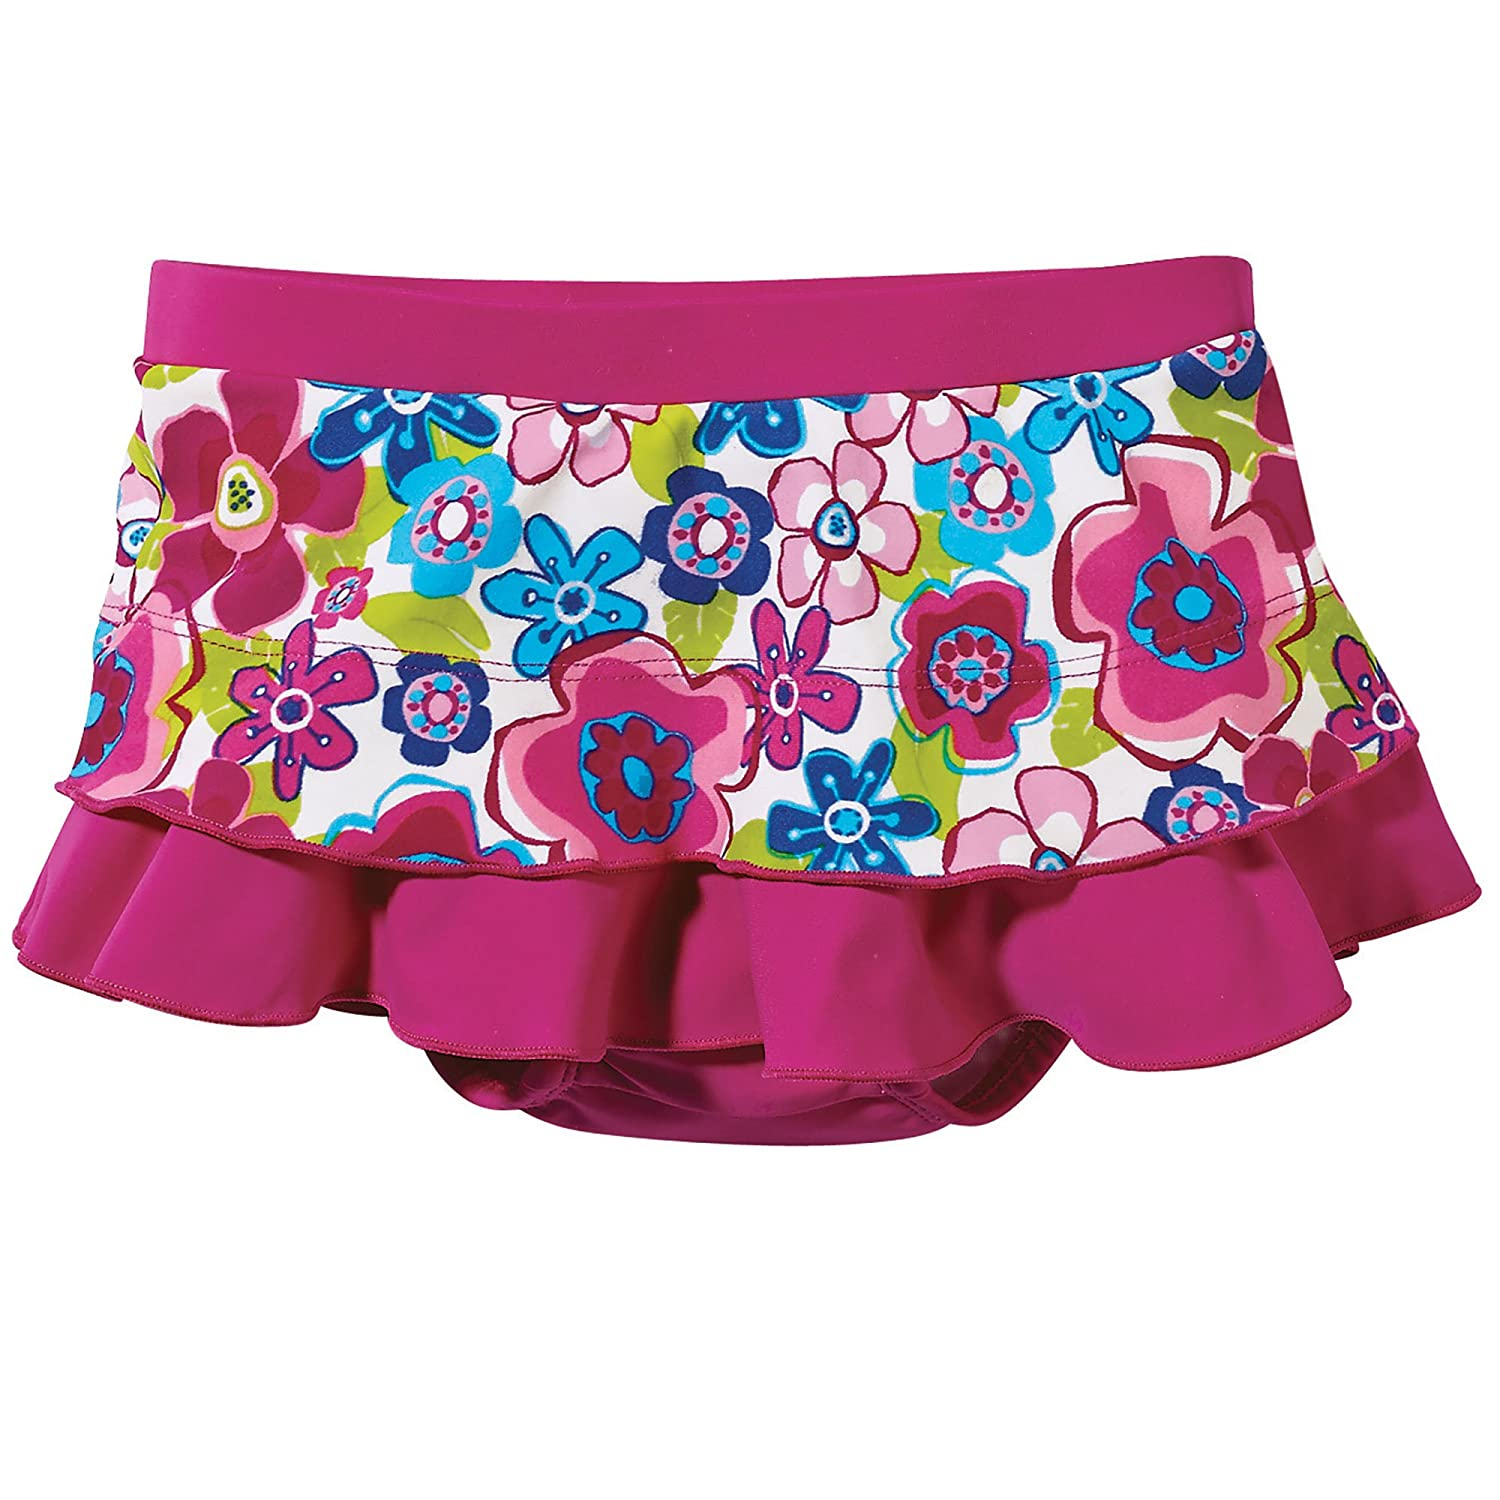 a4ace8dc33 ... Sun Smarties Toddler Girl Butterfly Reusable Washable Swim Diaper Skirt  2T Blue 6868382 ...